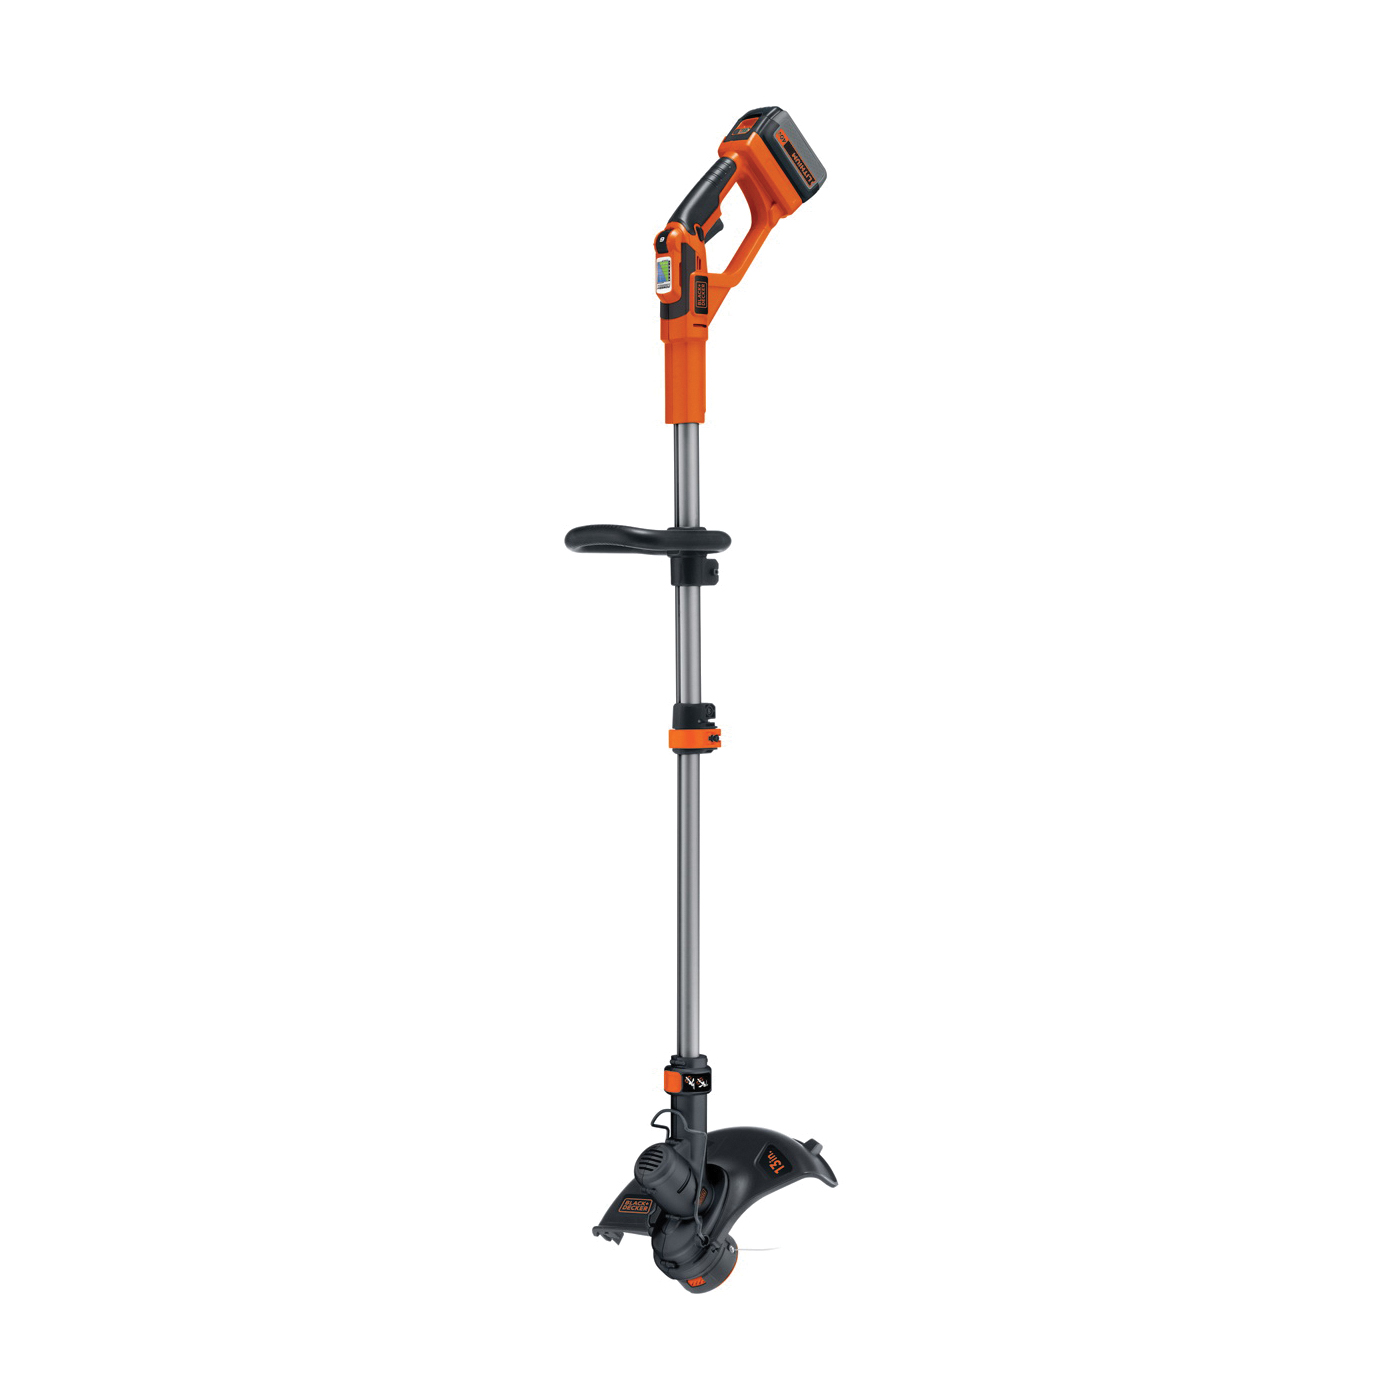 Picture of Black+Decker LST136 String Trimmer, 1.5 Ah, 40 V Battery, Lithium-Ion Battery, 1 -Speed, 52 in L Shaft